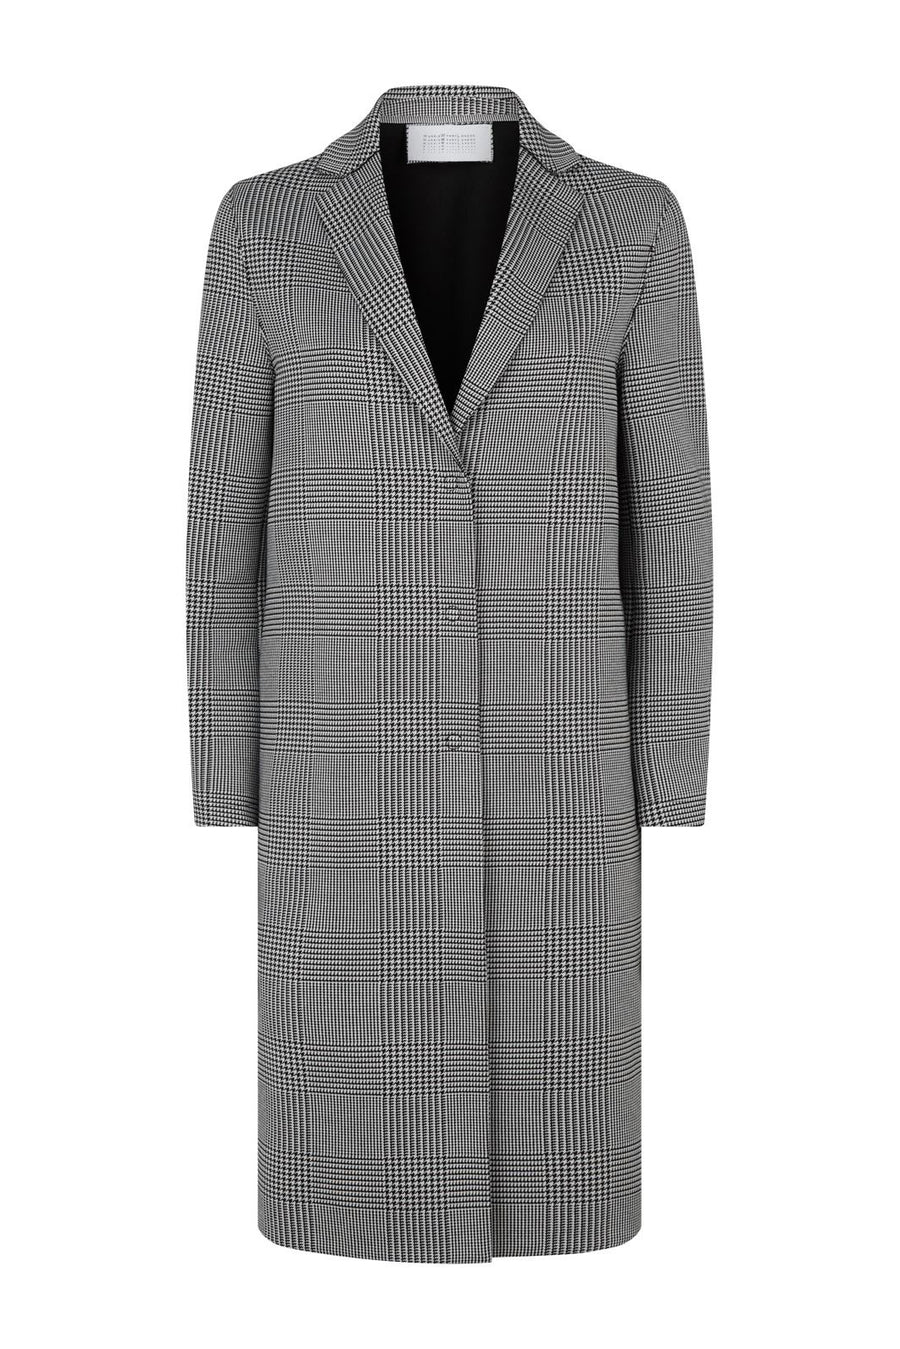 Prince of Wales Overcoat - Black and White - Pavilion